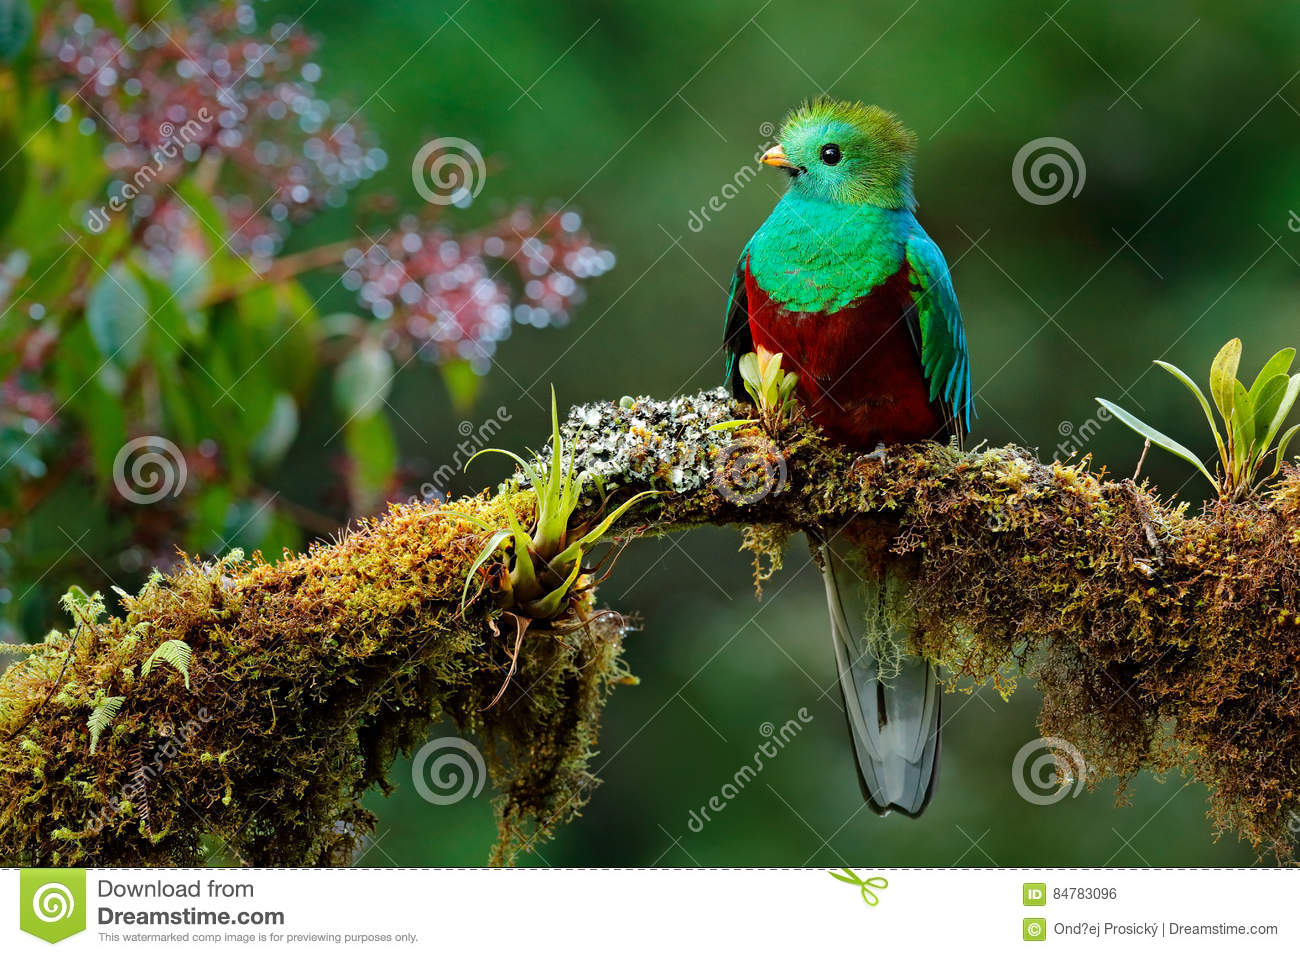 Beautiful bird in nature tropic habitat. Resplendent Quetzal, Pharomachrus mocinno, Savegre in Costa Rica, with green forest backg